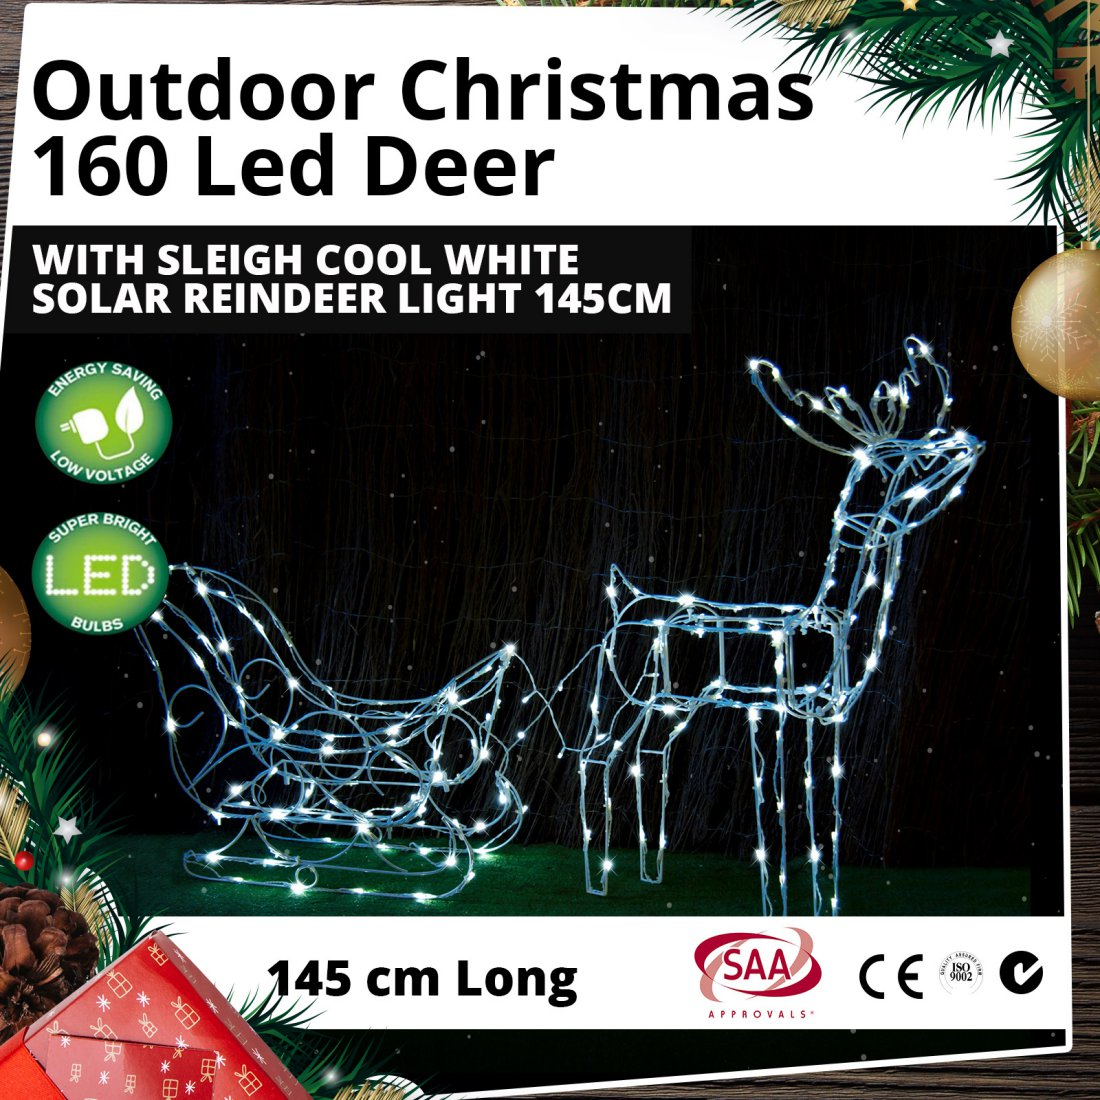 160 LED Deer with Sleigh Cool White Outdoor Solar Christmas Reindeer Light 145cm